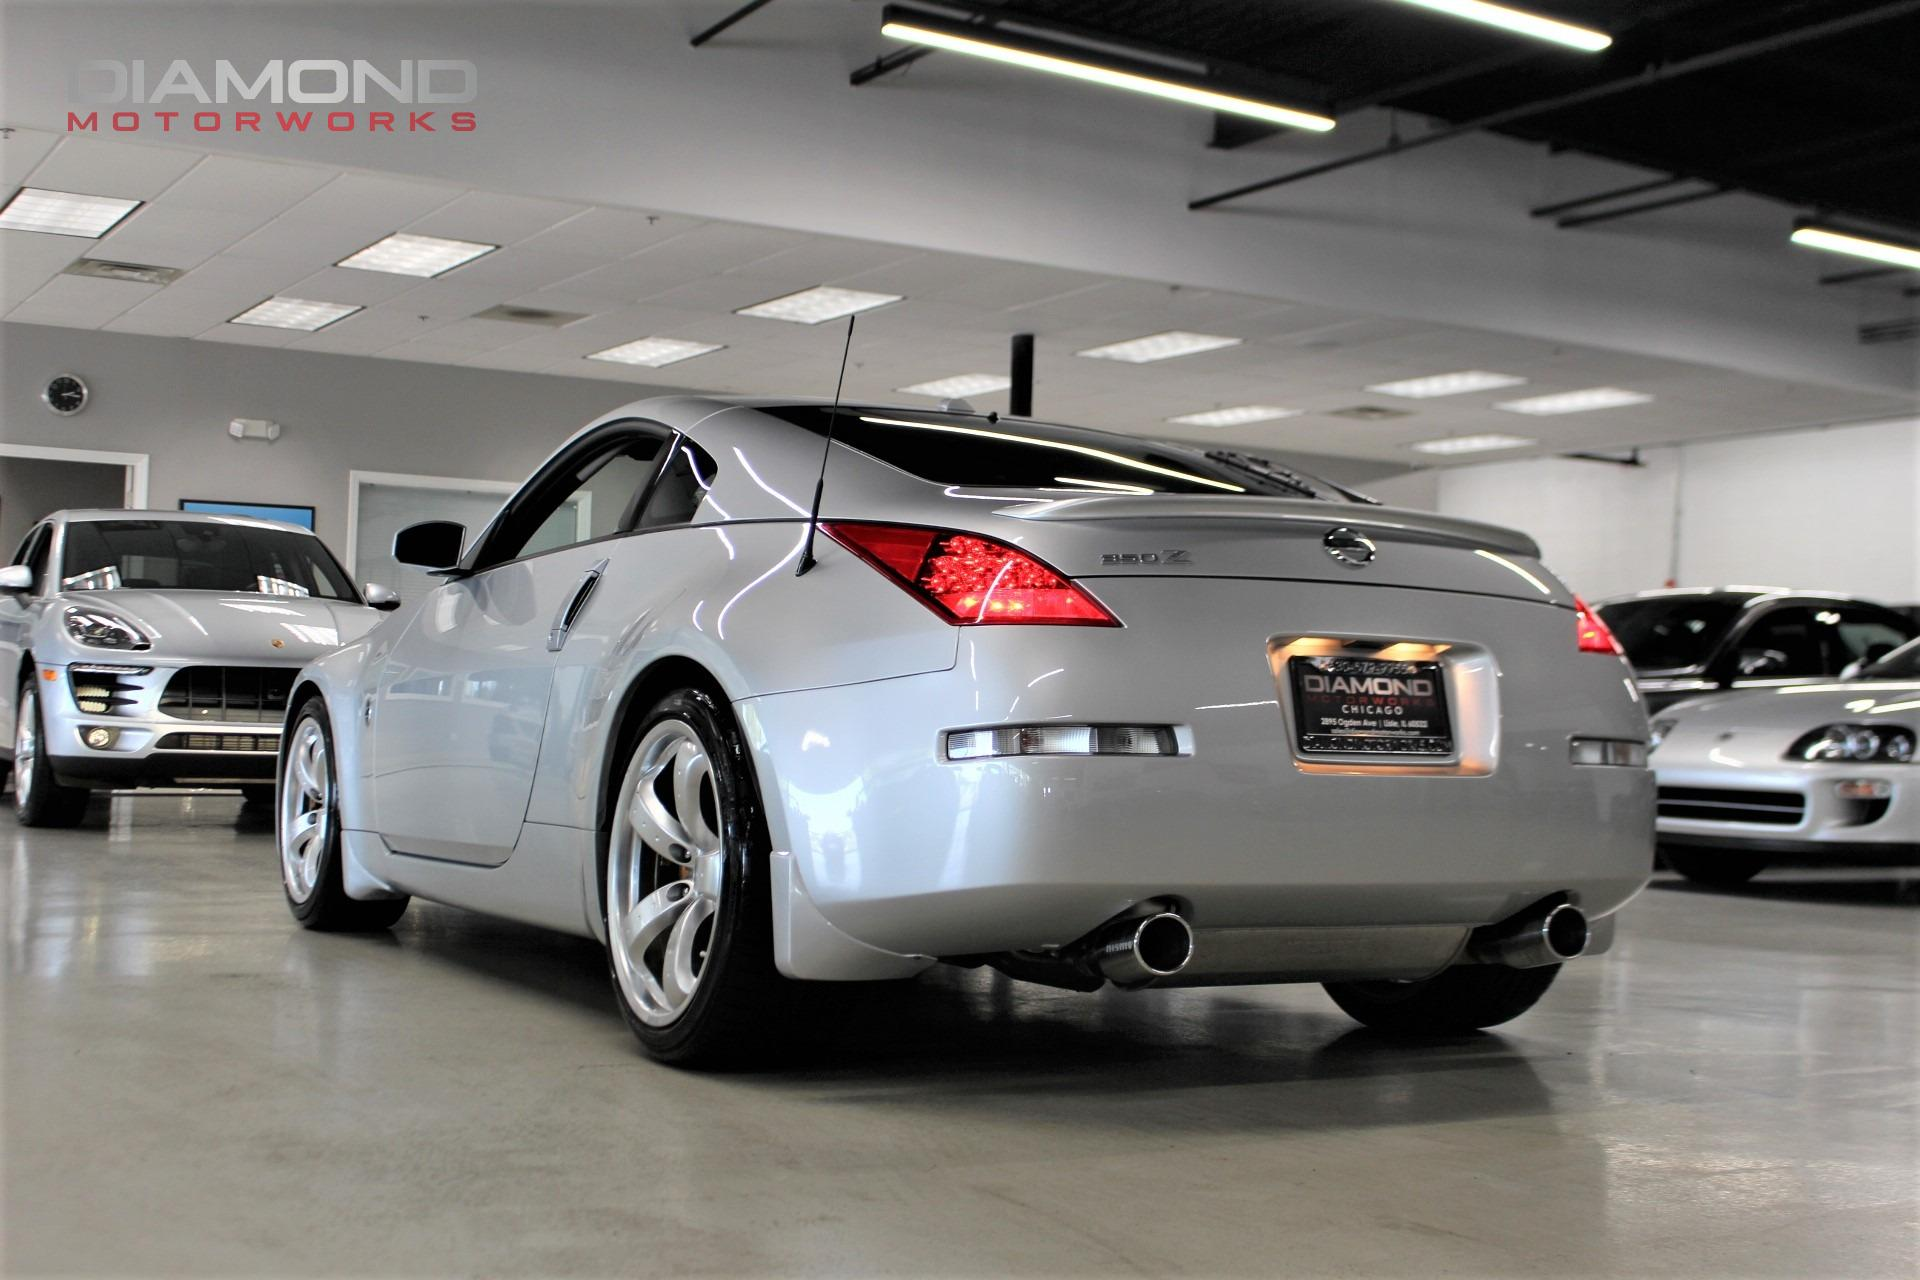 2008 Nissan 350Z Grand Touring Stock # 750849 for sale near